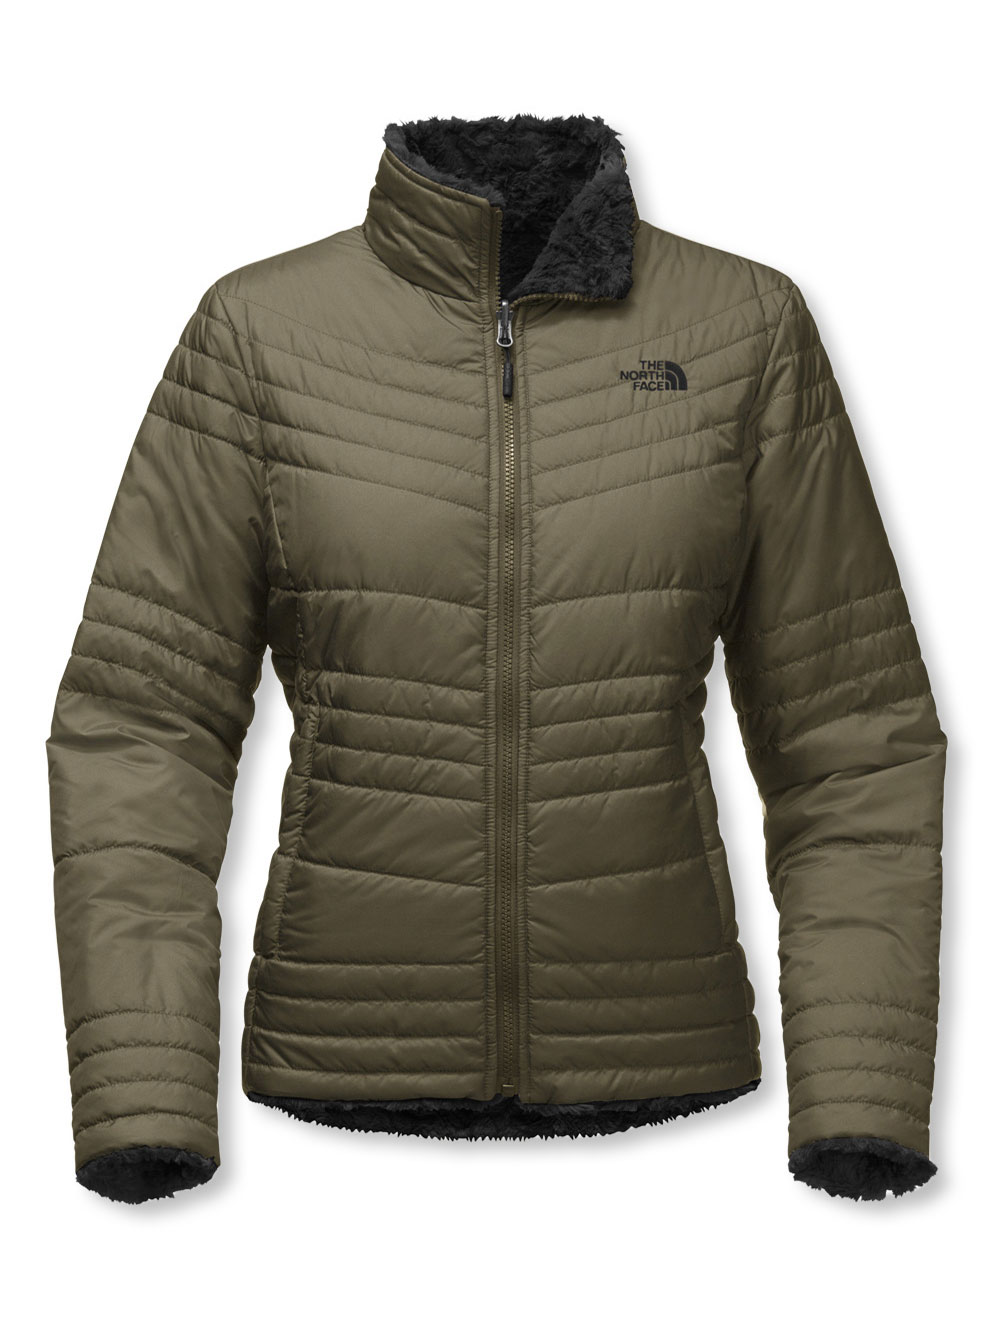 7299ca3e4 Women's Mossbud Swirl Jacket by The North Face in asphalt gray ...